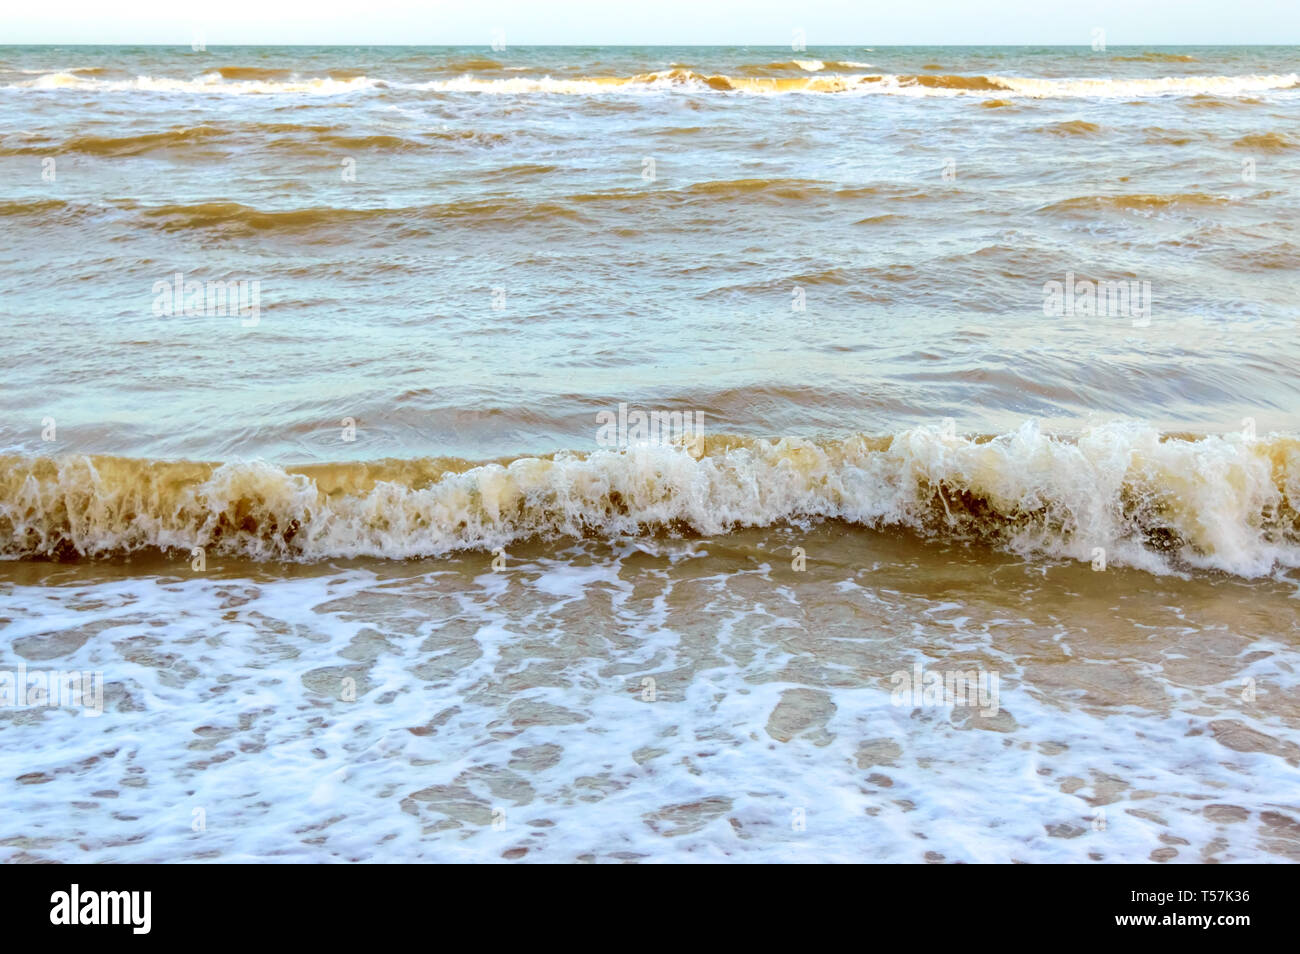 Waves on the shore. Sea wave close up on a sandy beach with sunlight. - Stock Image